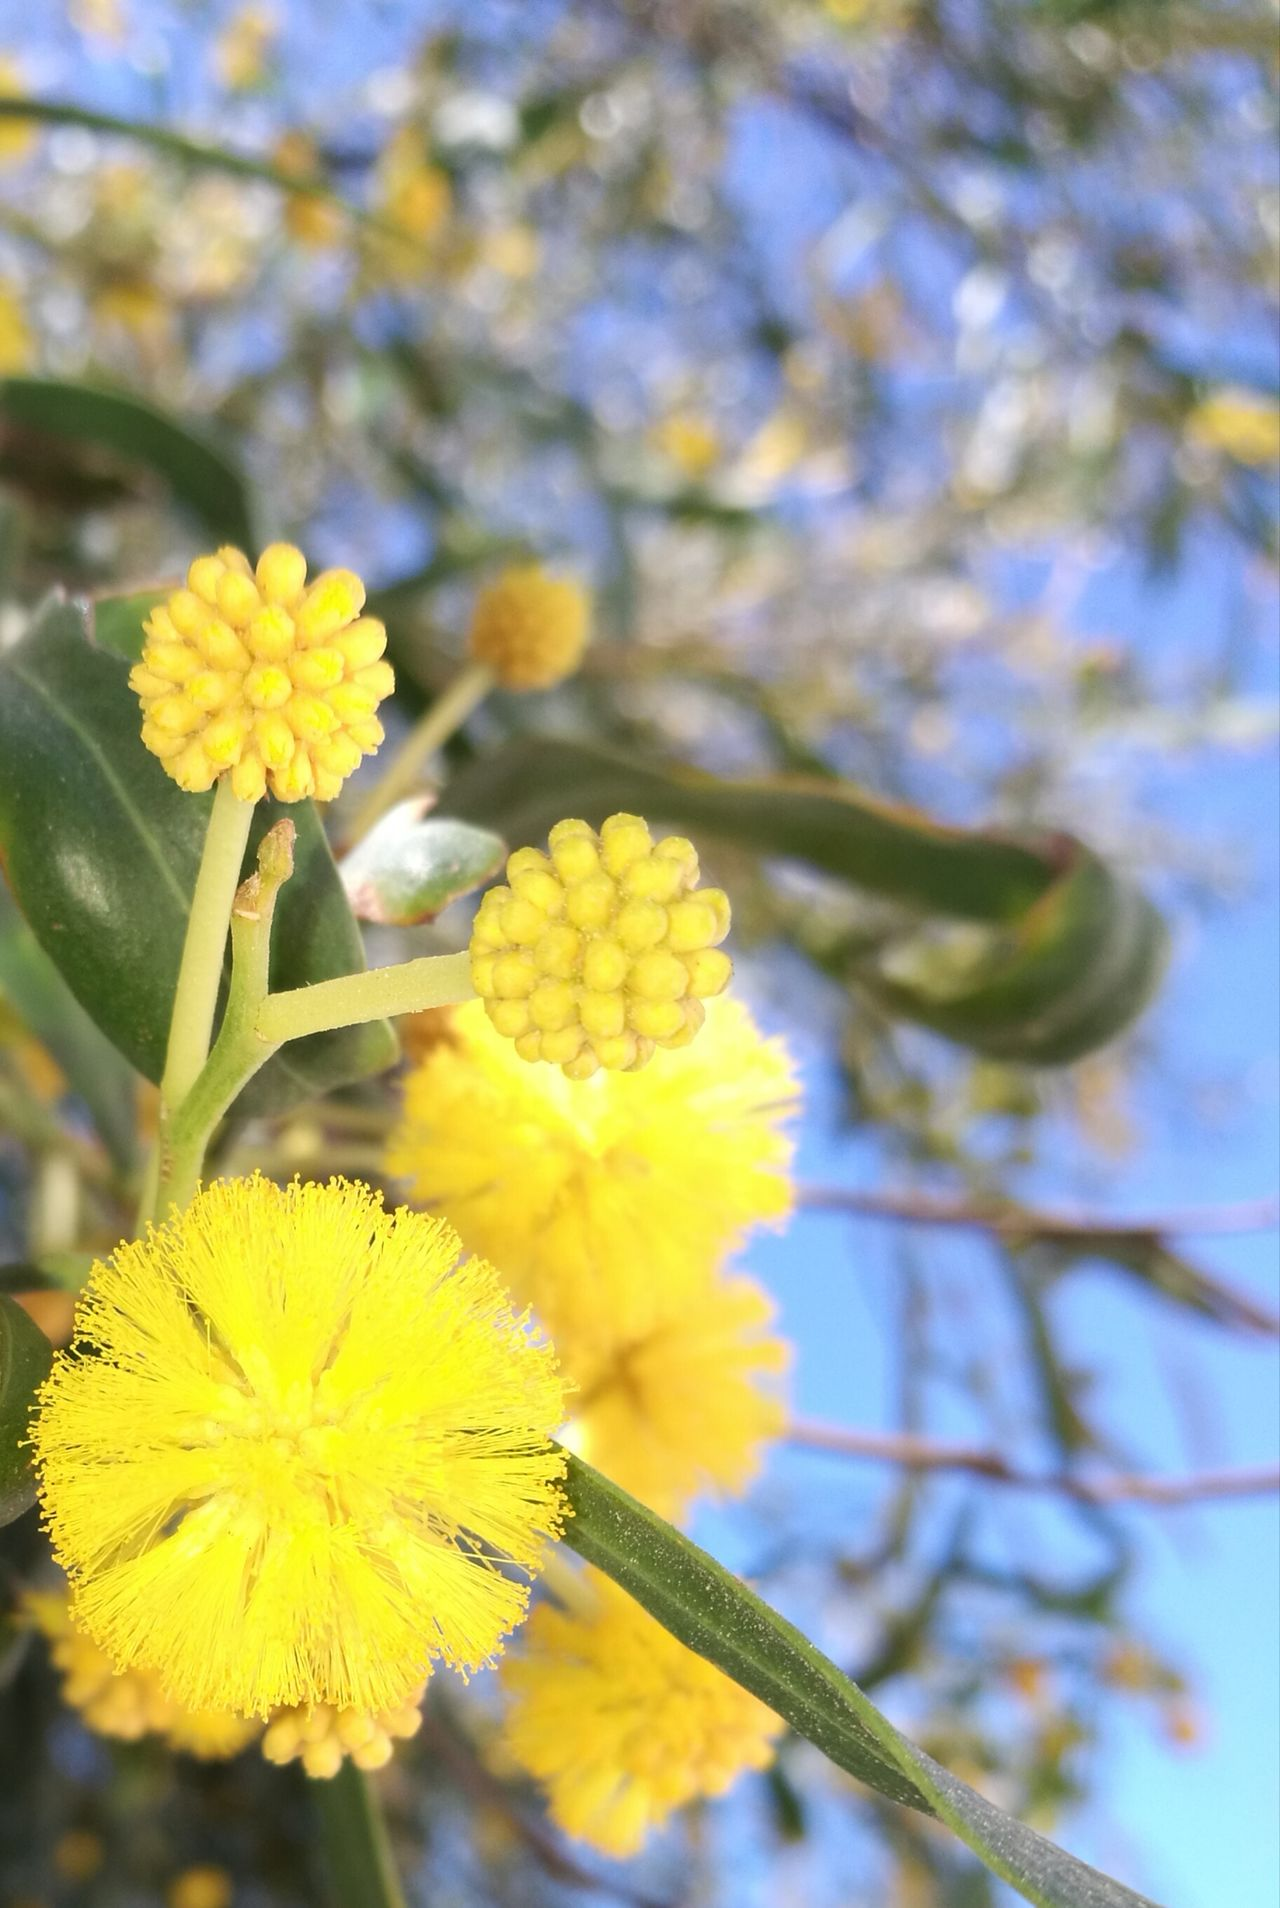 Yellow Flower Nature Growth Beauty In Nature Fragility Branch Close-up Petal Freshness No People Springtime Blossom Outdoors Tranquility Flower Head Day Mimosa Acacia Tree